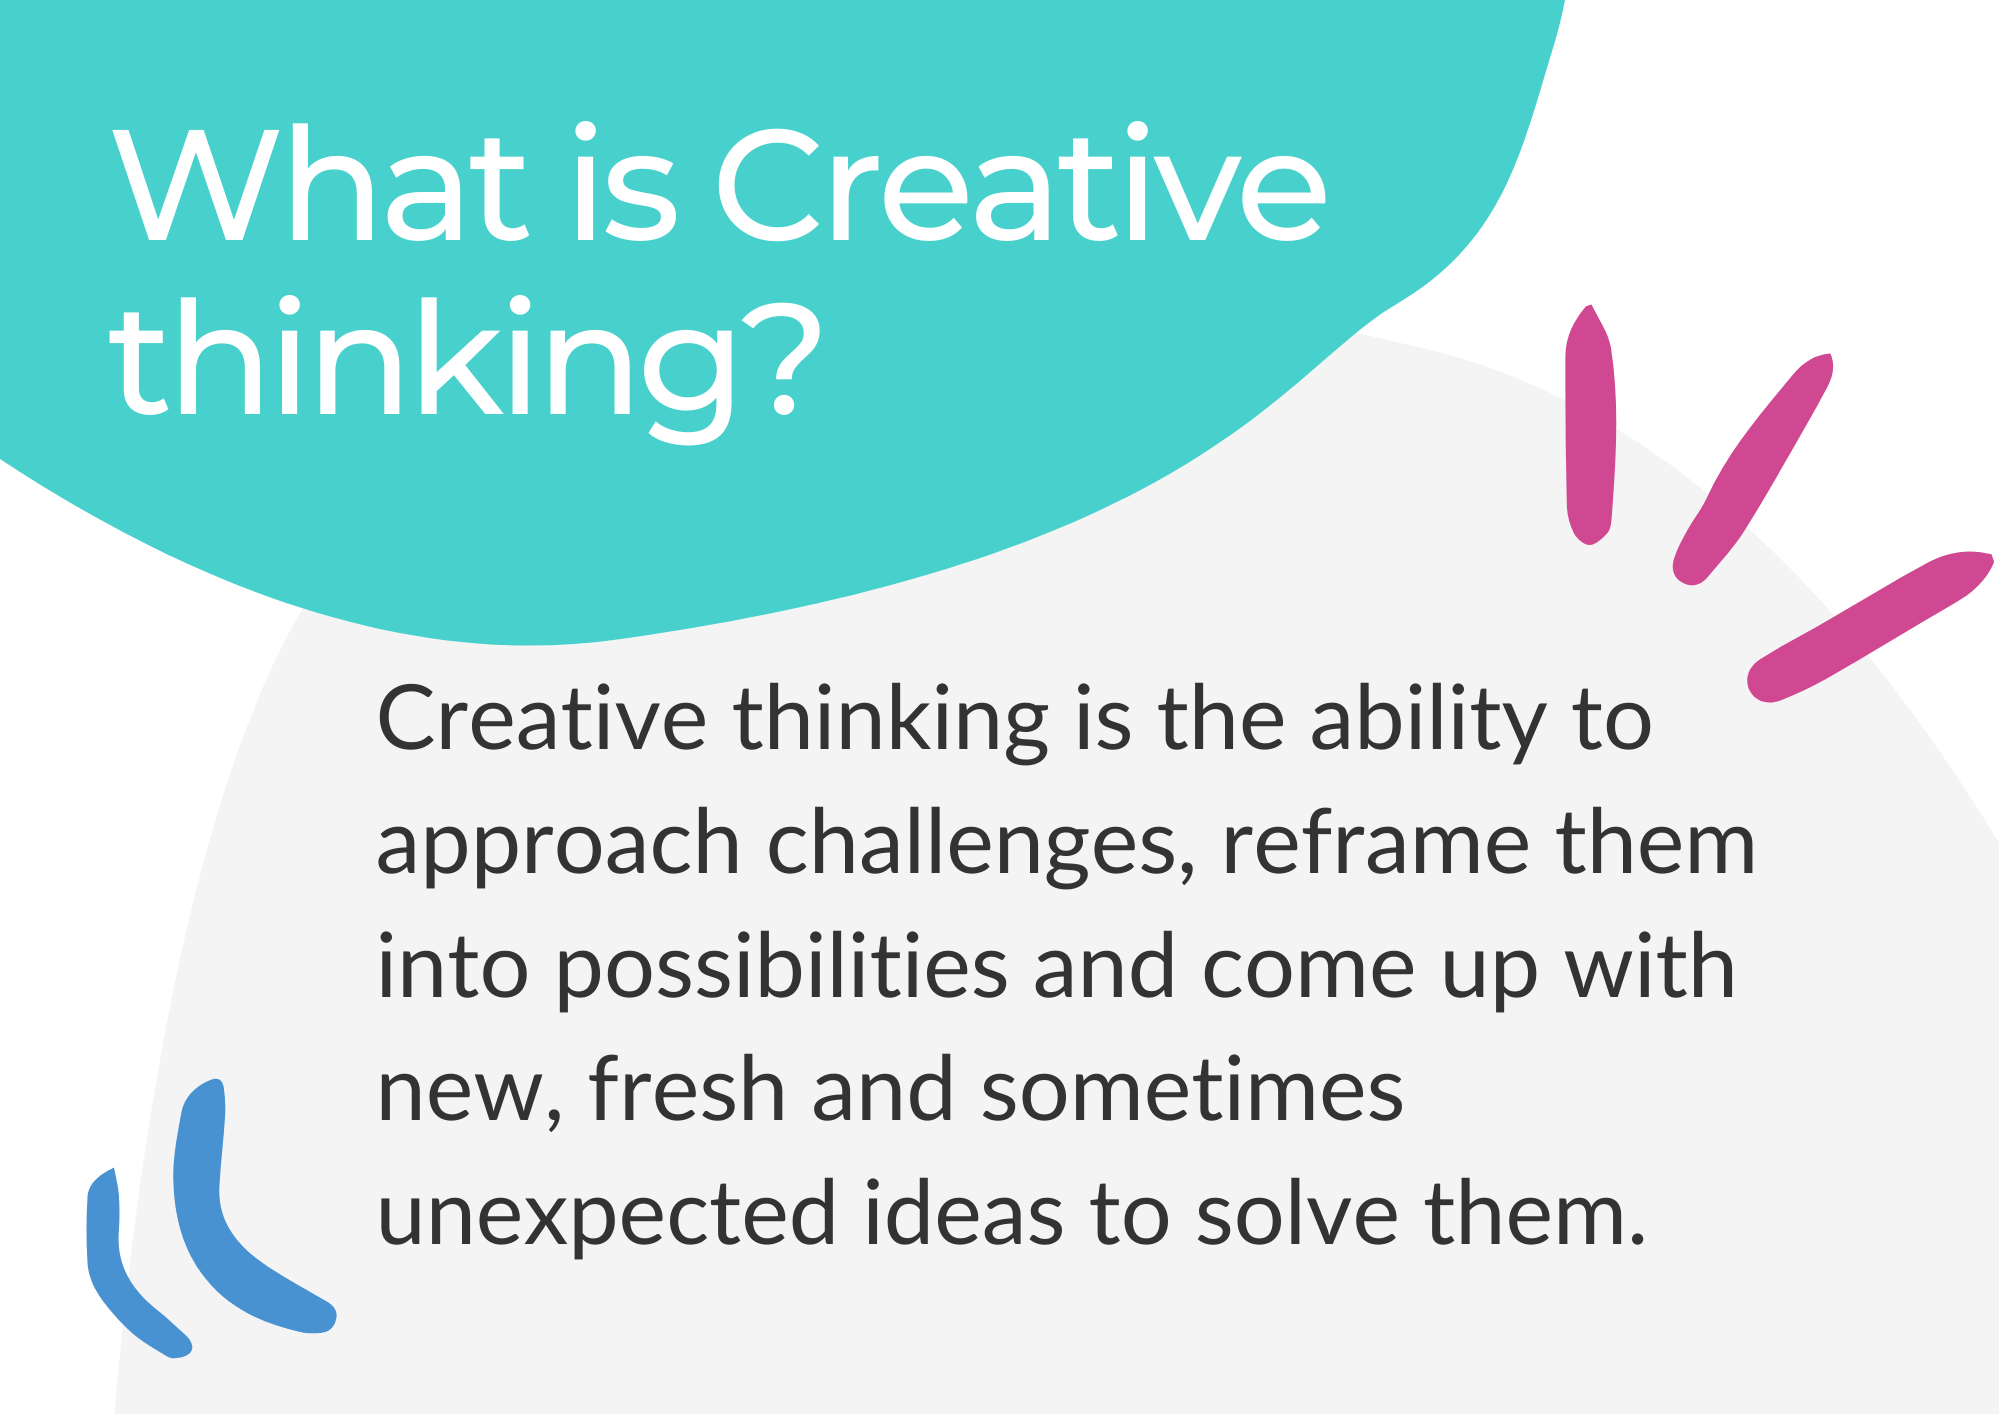 The definition of creative thinking